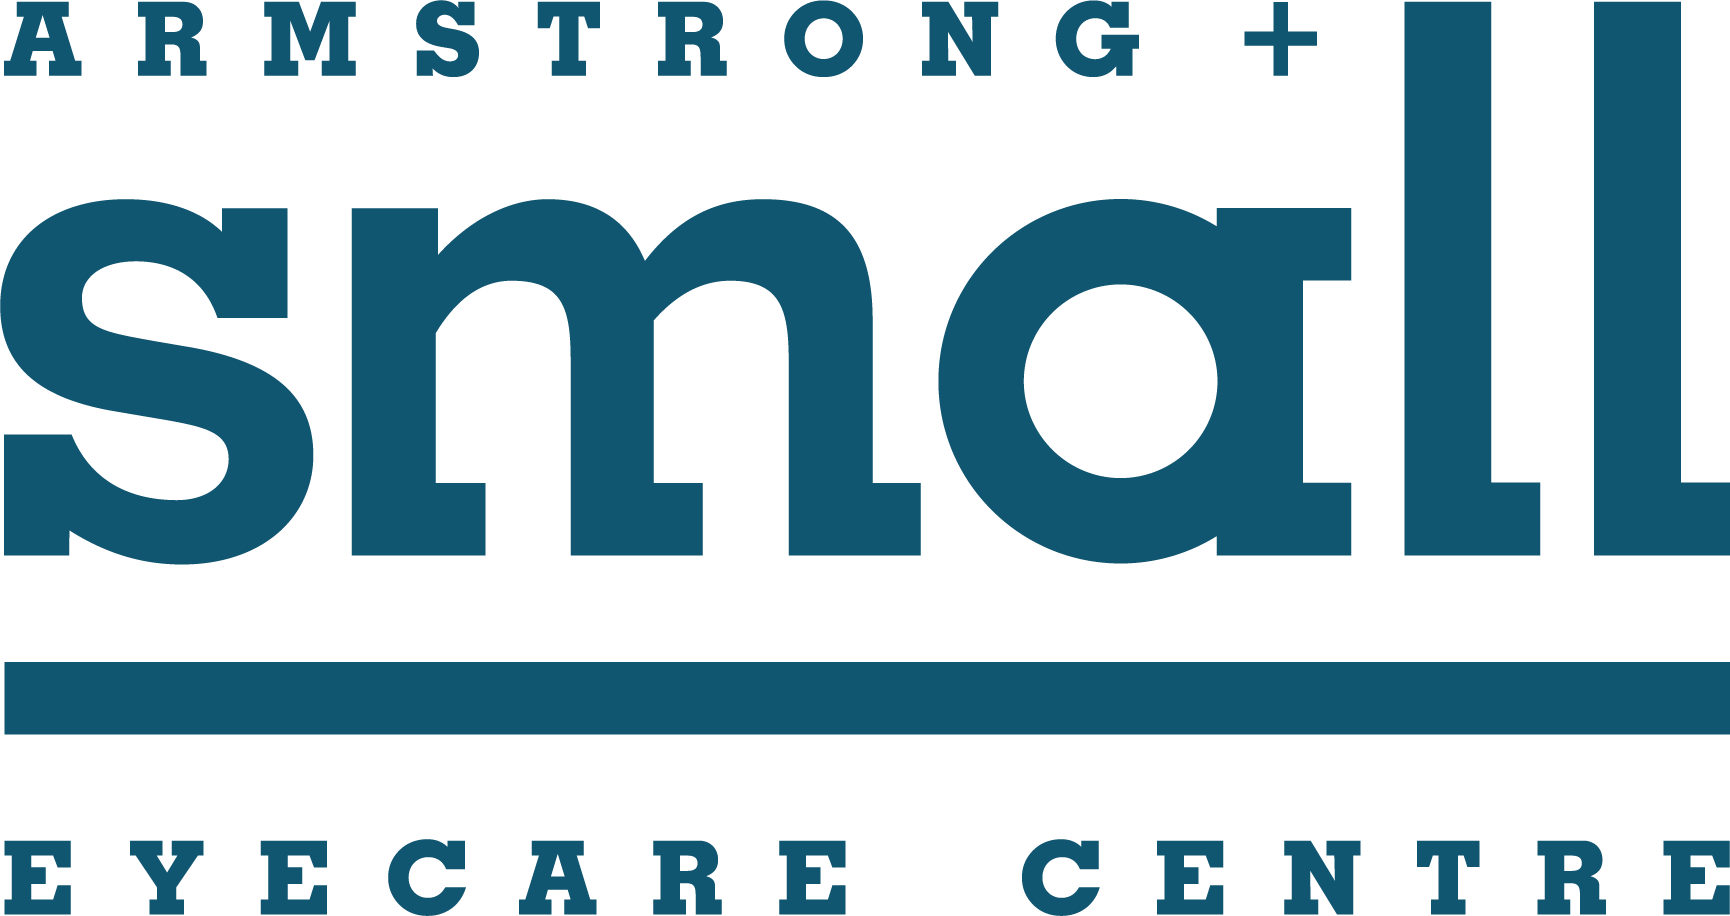 Armstrong & Small Eyecare Centre